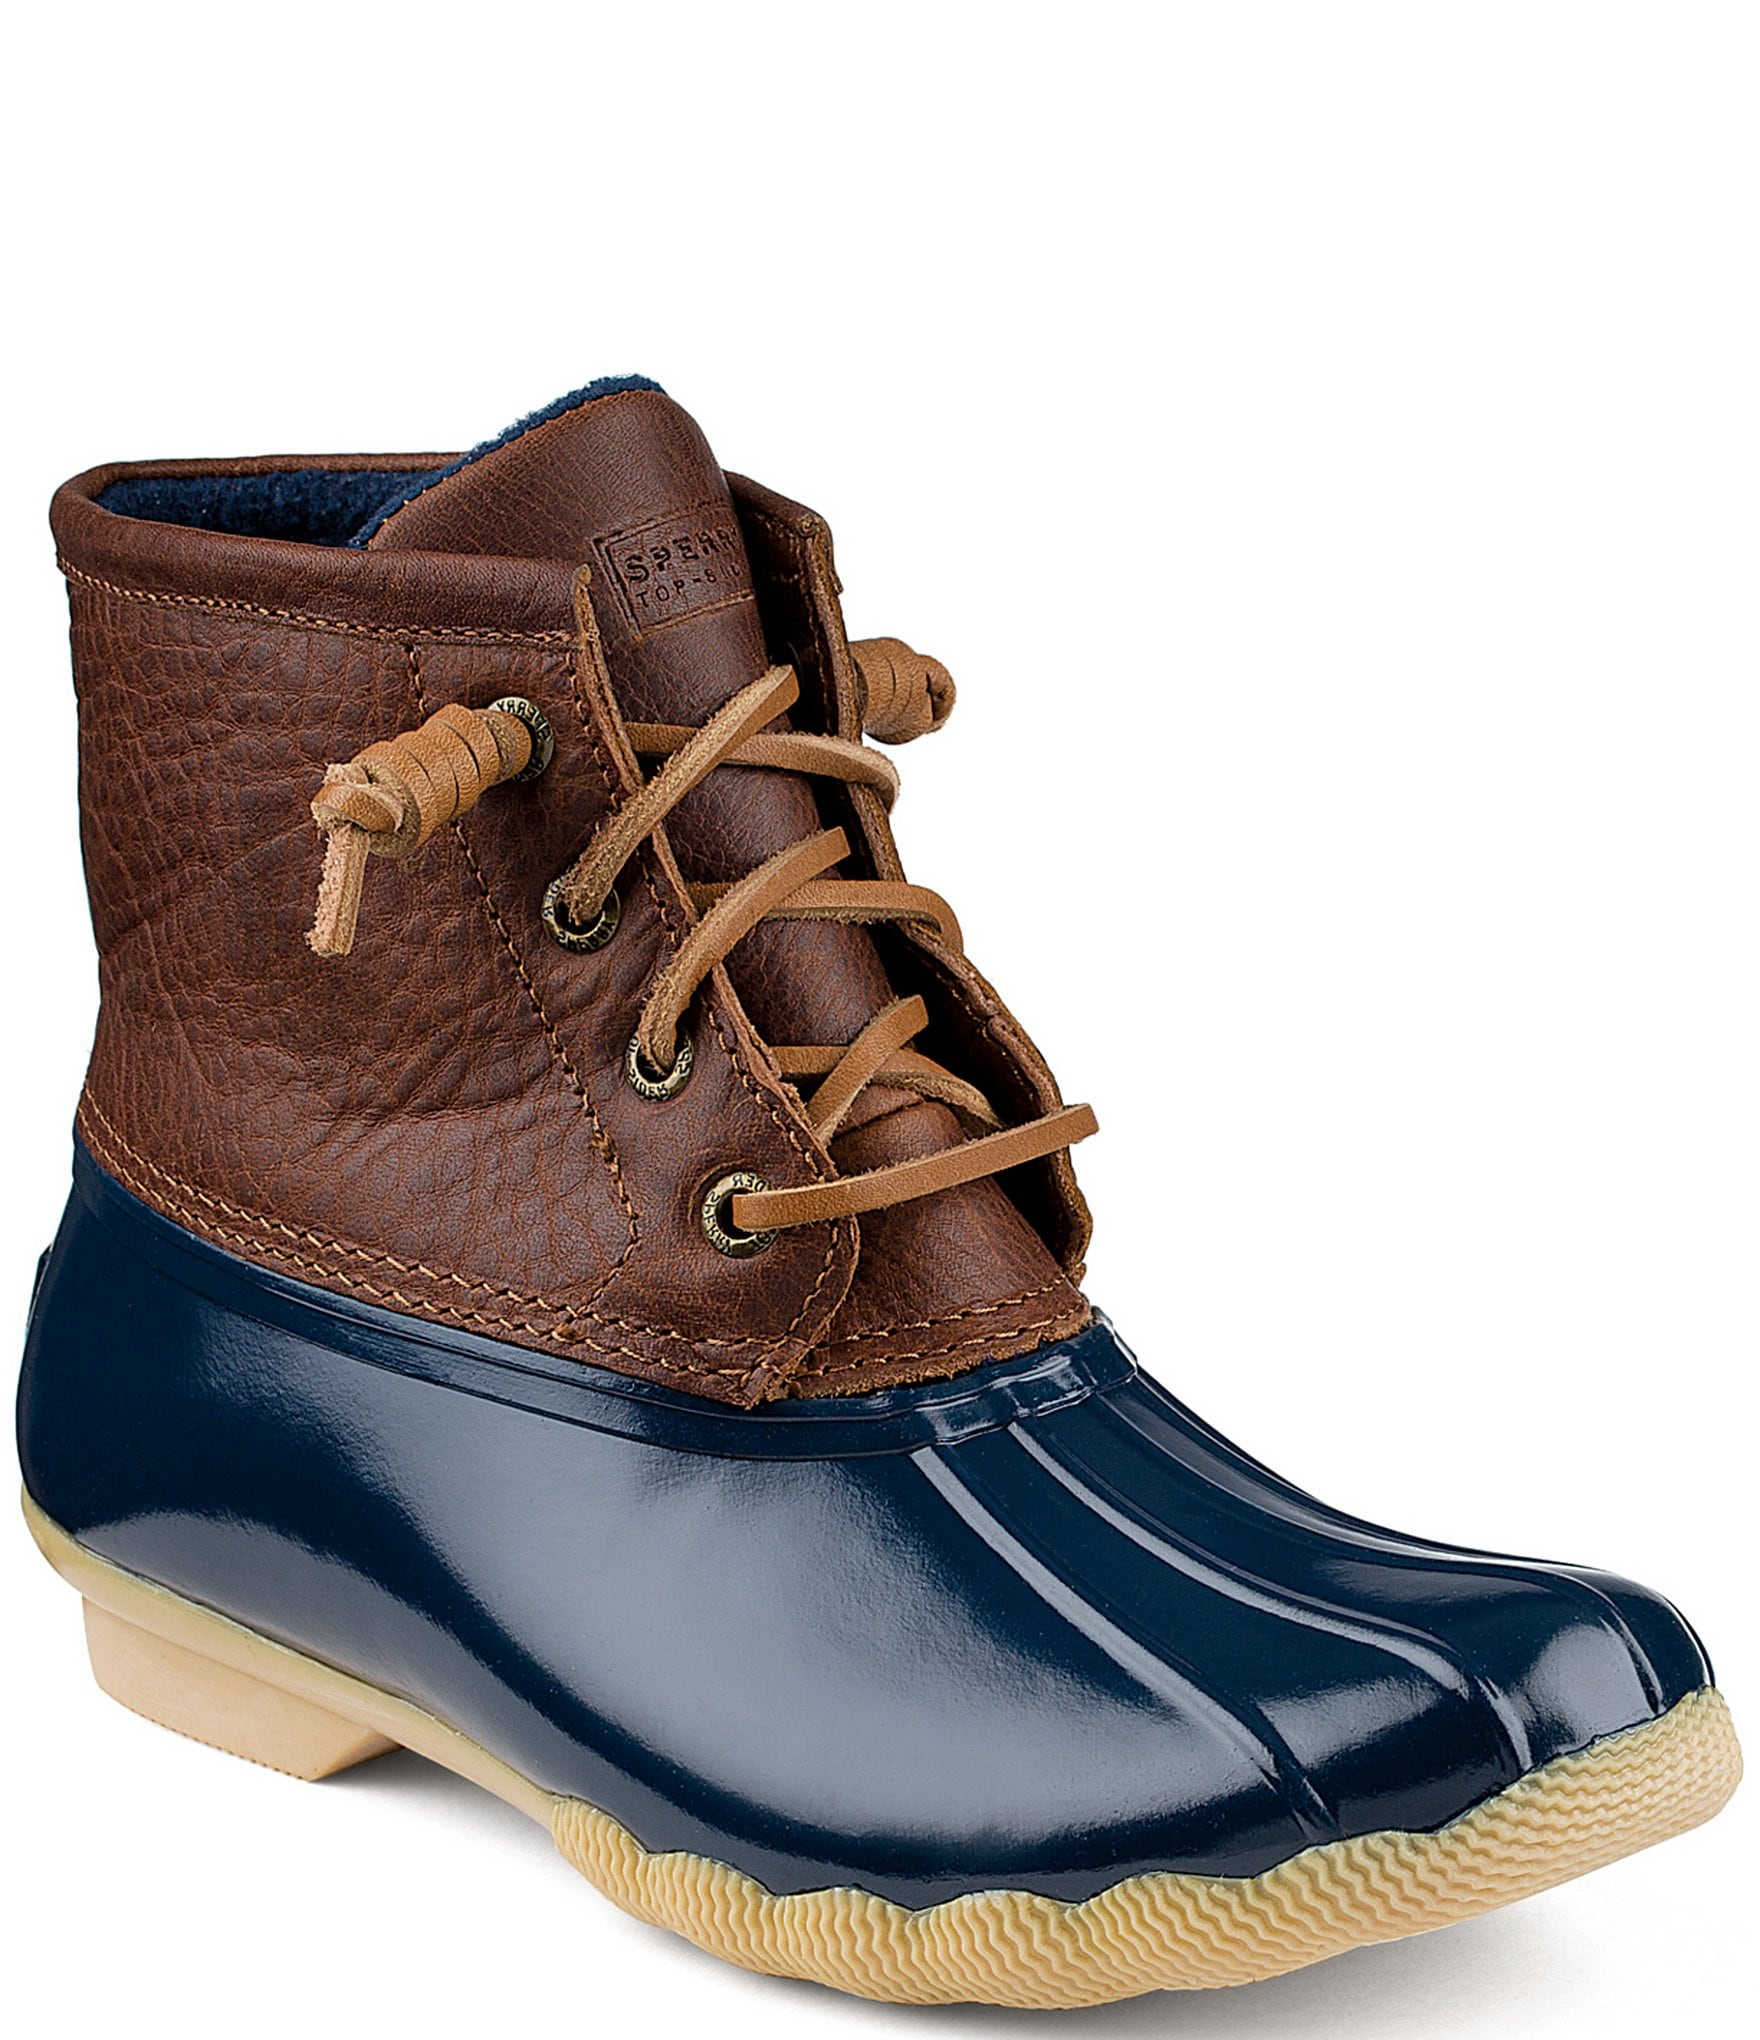 1aa2db89a24d booot  Women s Shoes